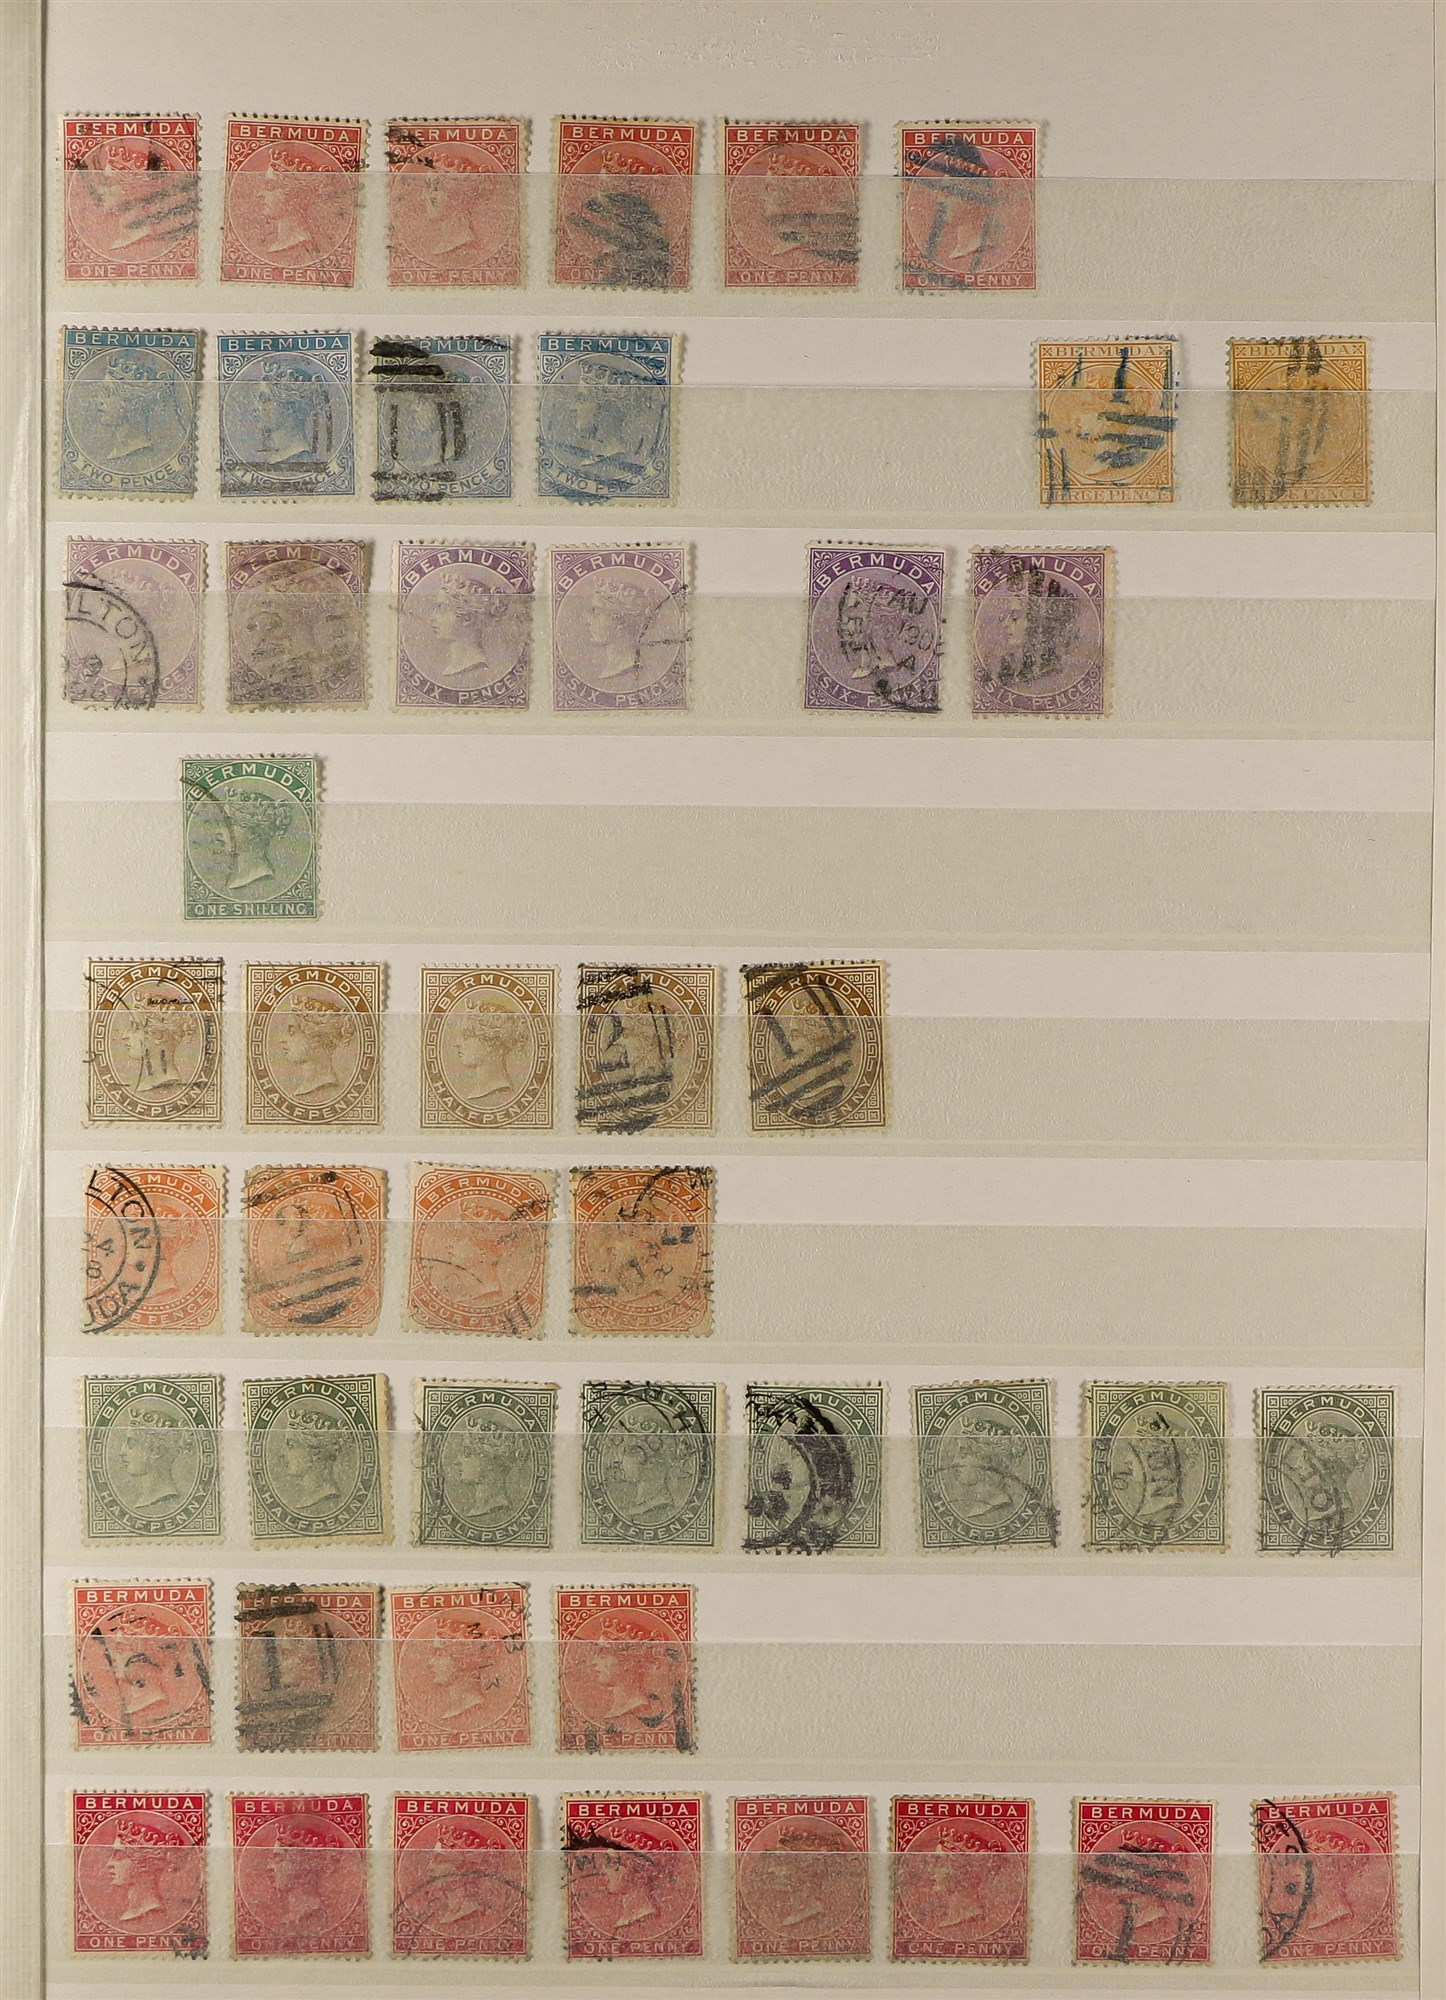 BERMUDA 1865-1952 used collection incl. 1865-1903 CC Wmk to 1s, 1883-1904 CA Wmk to 1s, 1901-10